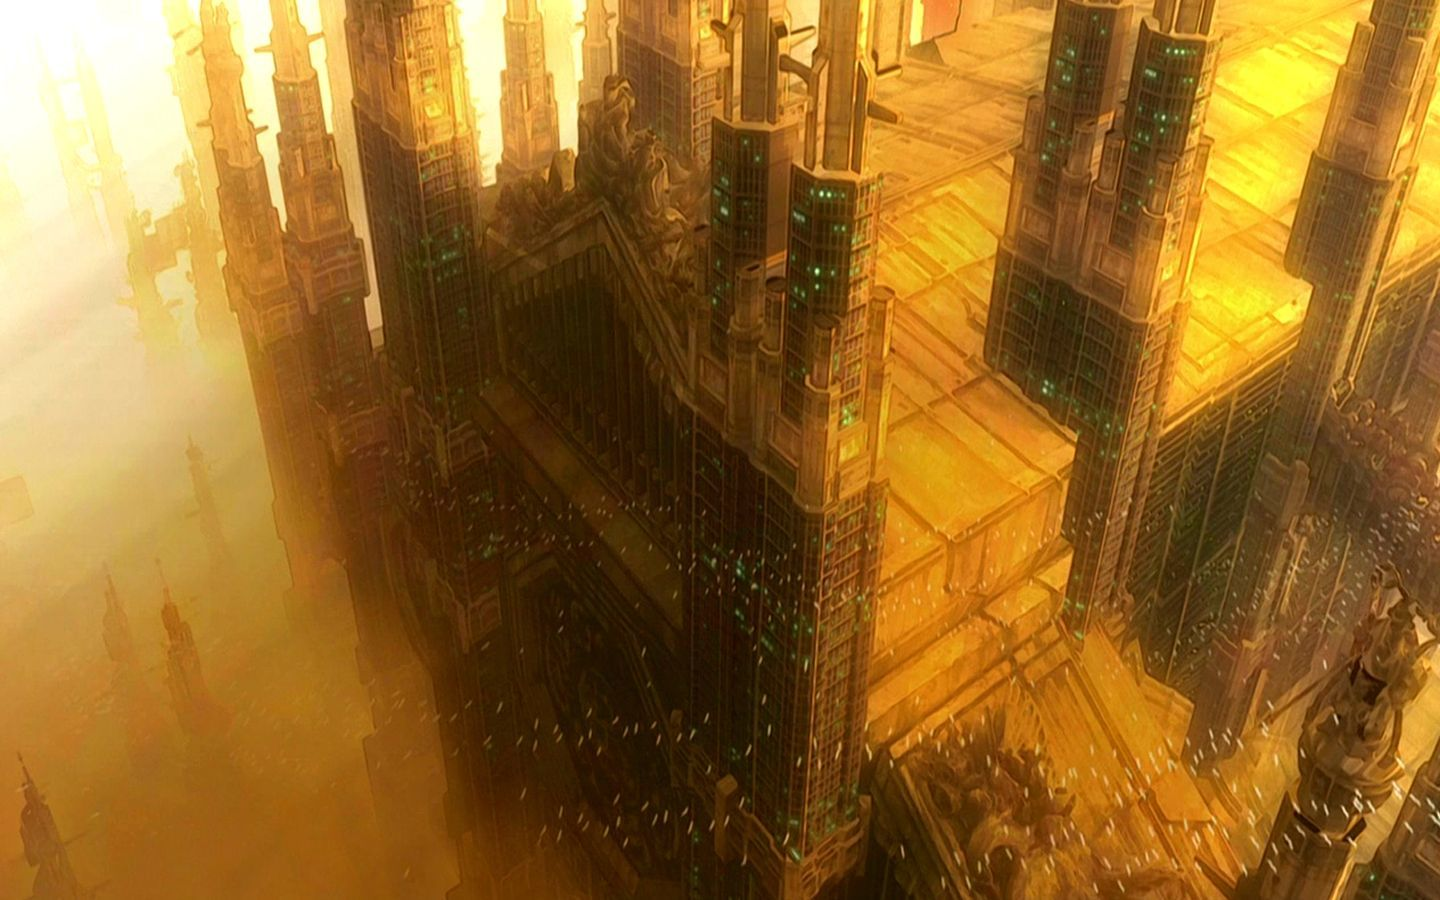 Imgur The Most Awesome Images On The Internet Anime Background Ghost In The Shell Anime Ghost